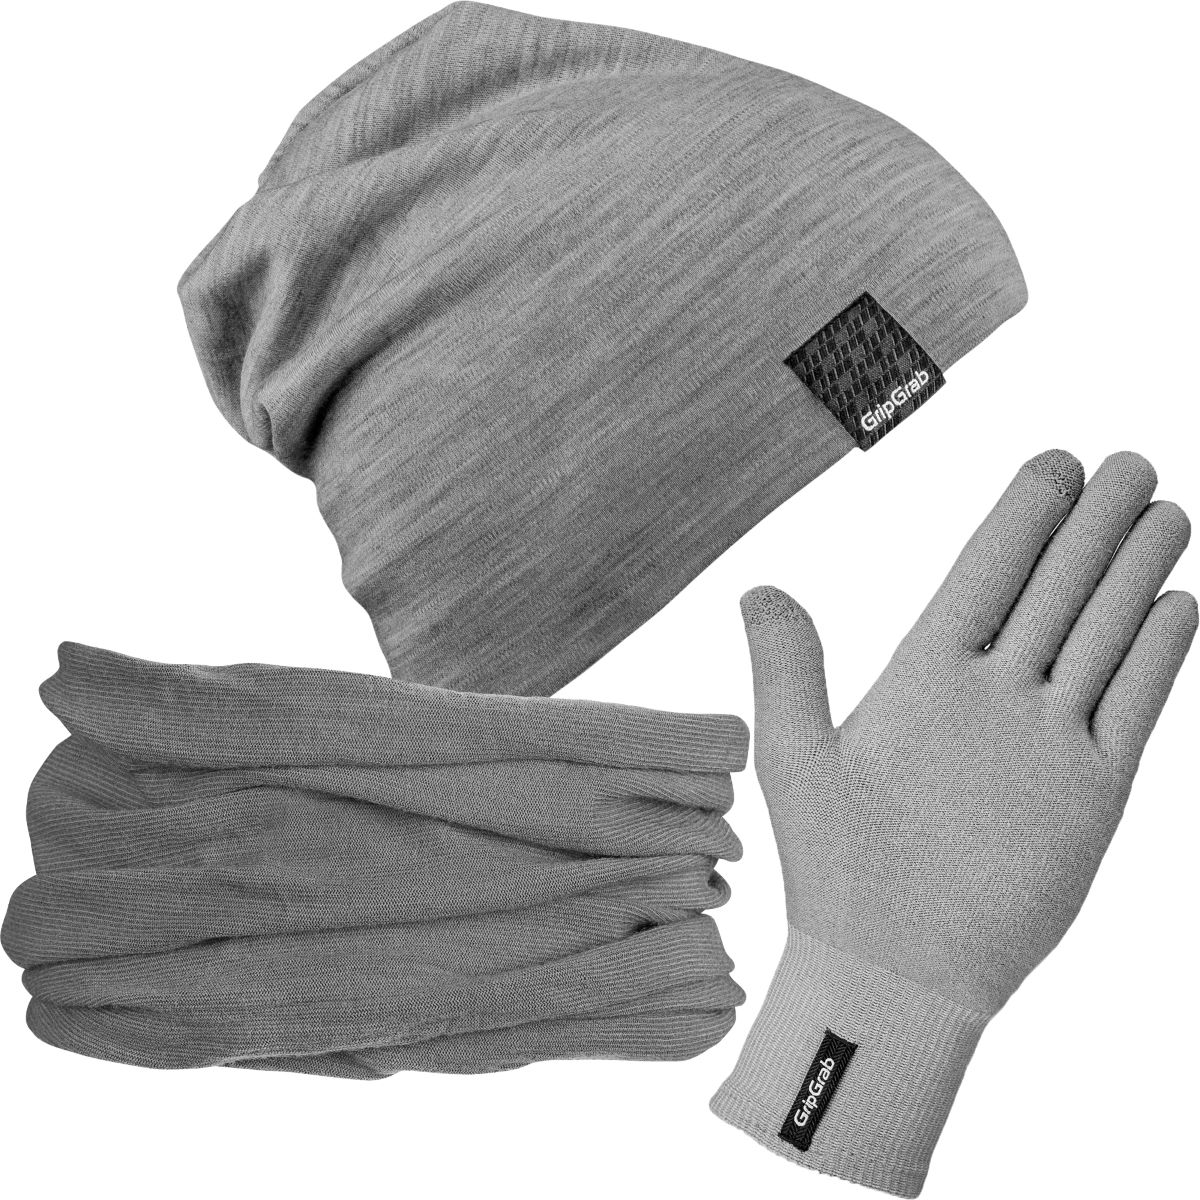 Wiggle Com Gripgrab Merino Runners Accessories Pack Gloves